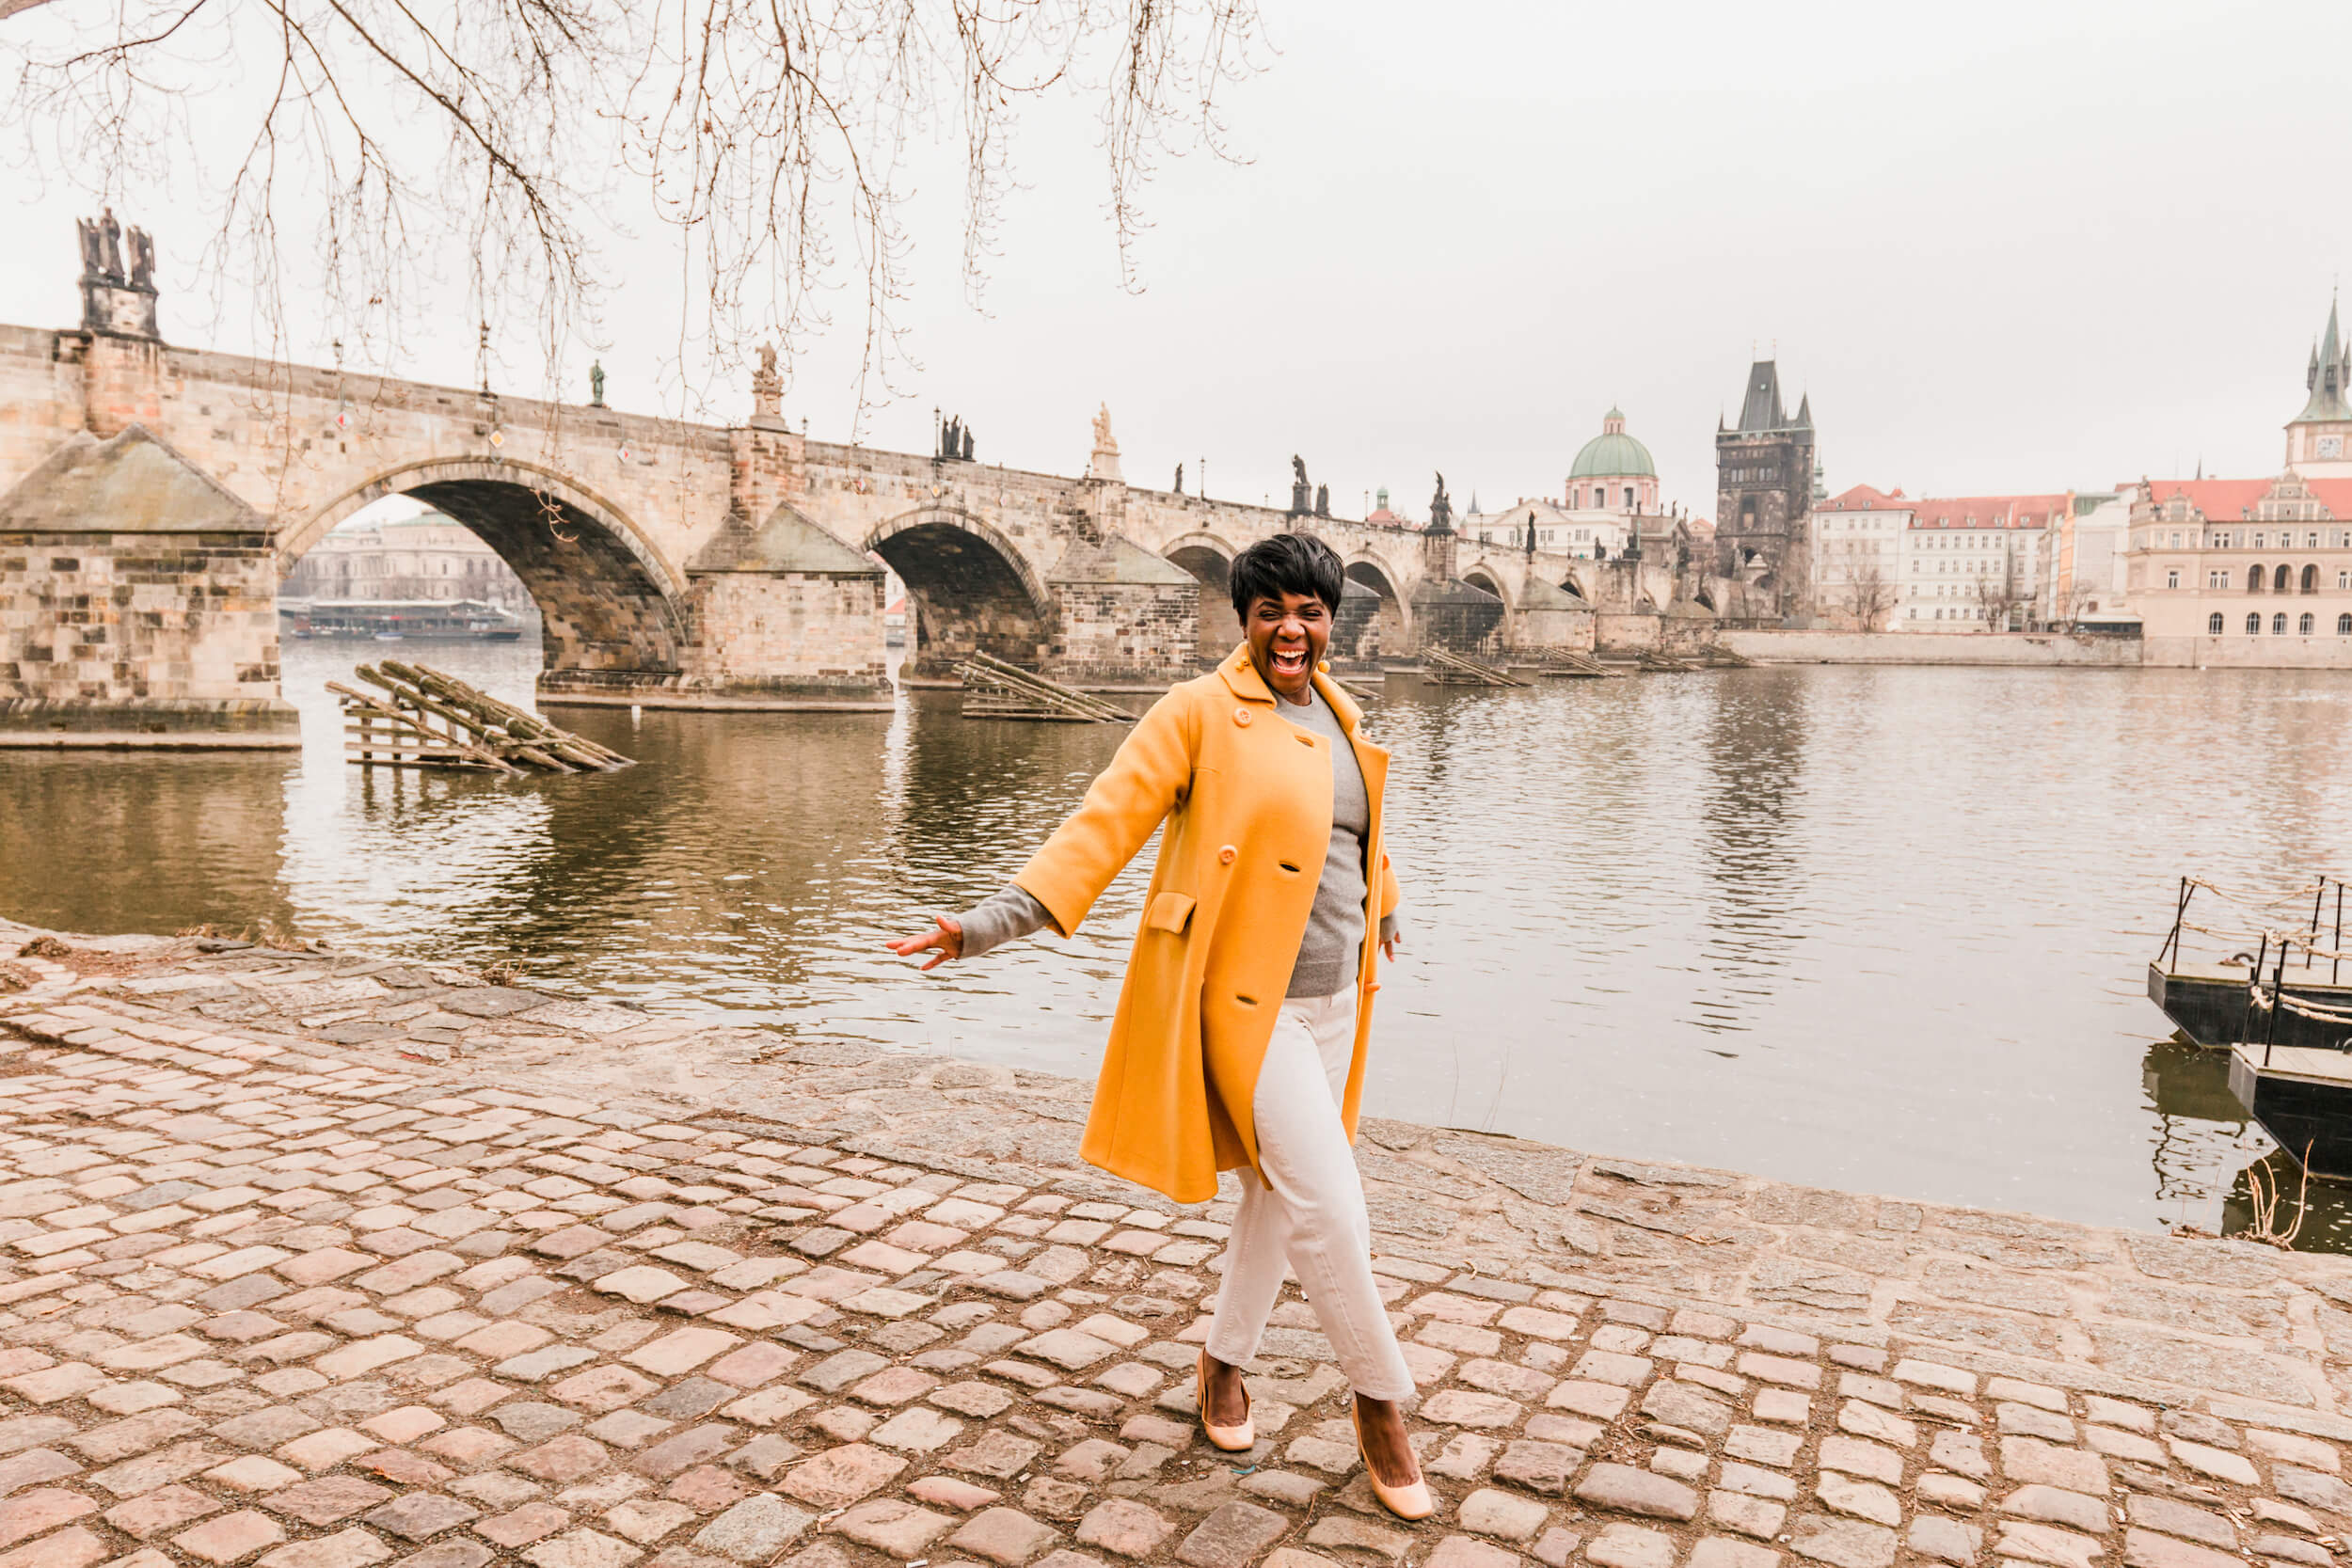 Photo: Natalie in Prague for Flytographer